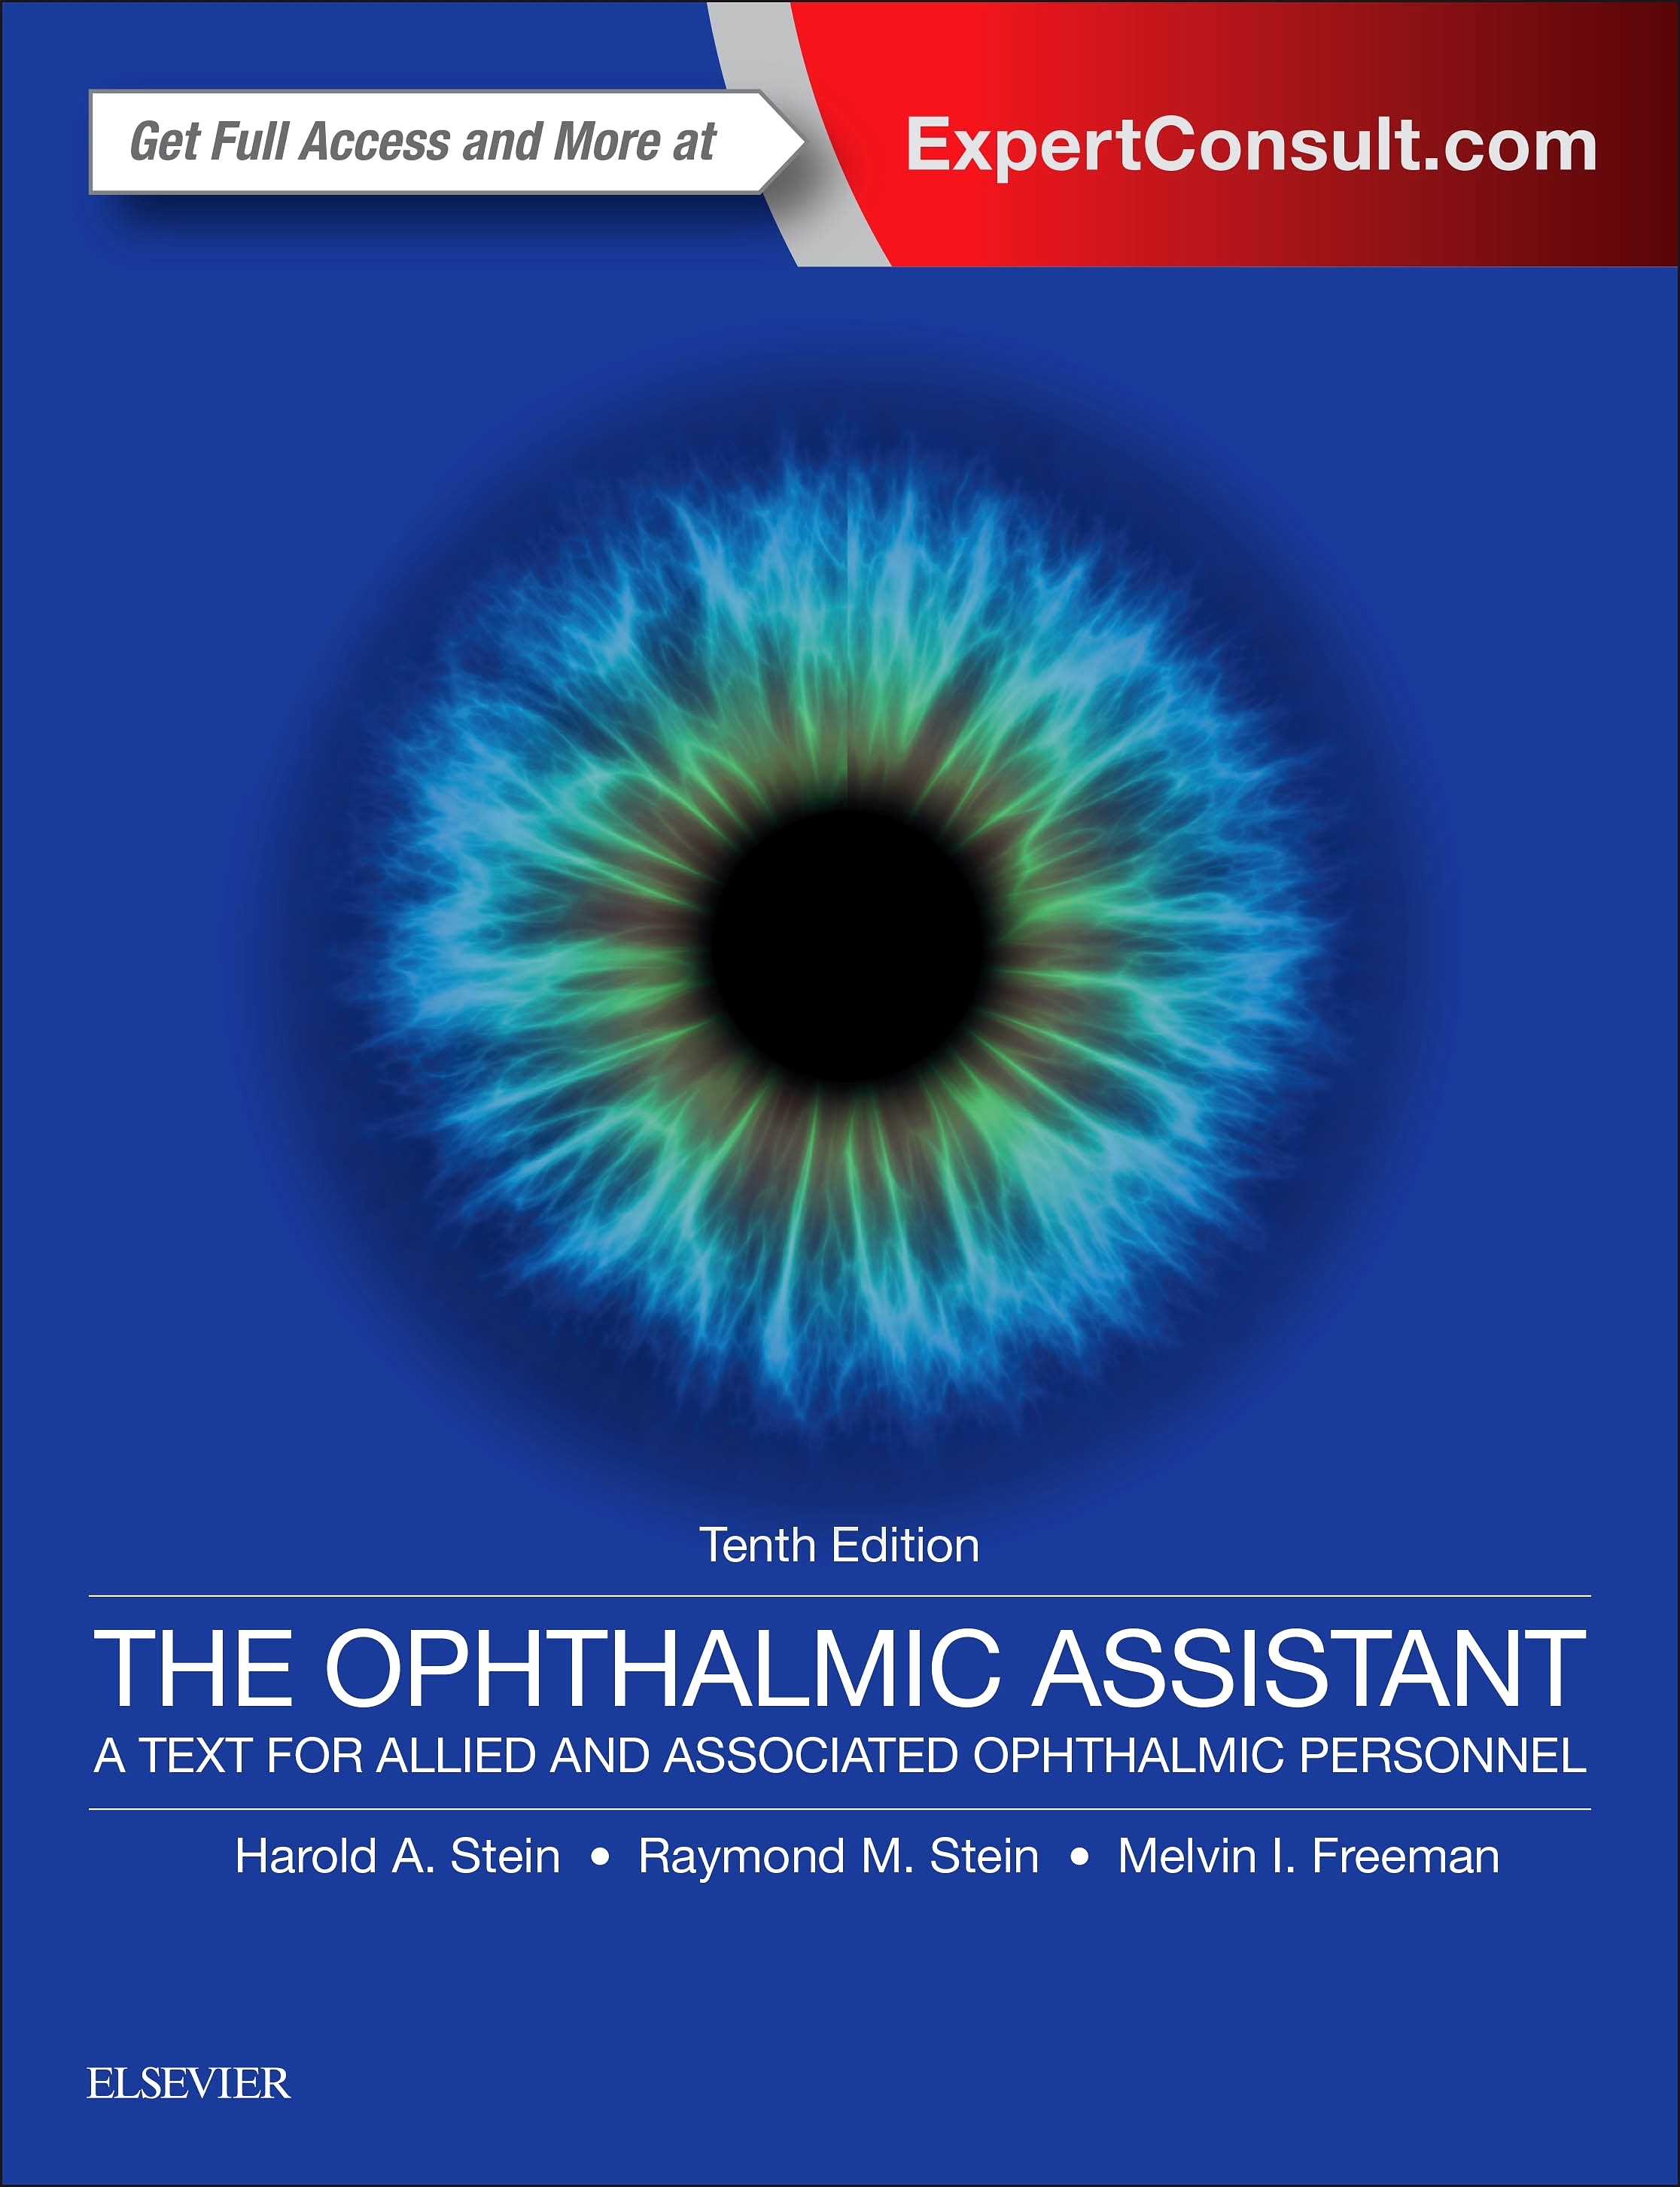 Evolve Resources for The Ophthalmic Assistant, 10th Edition